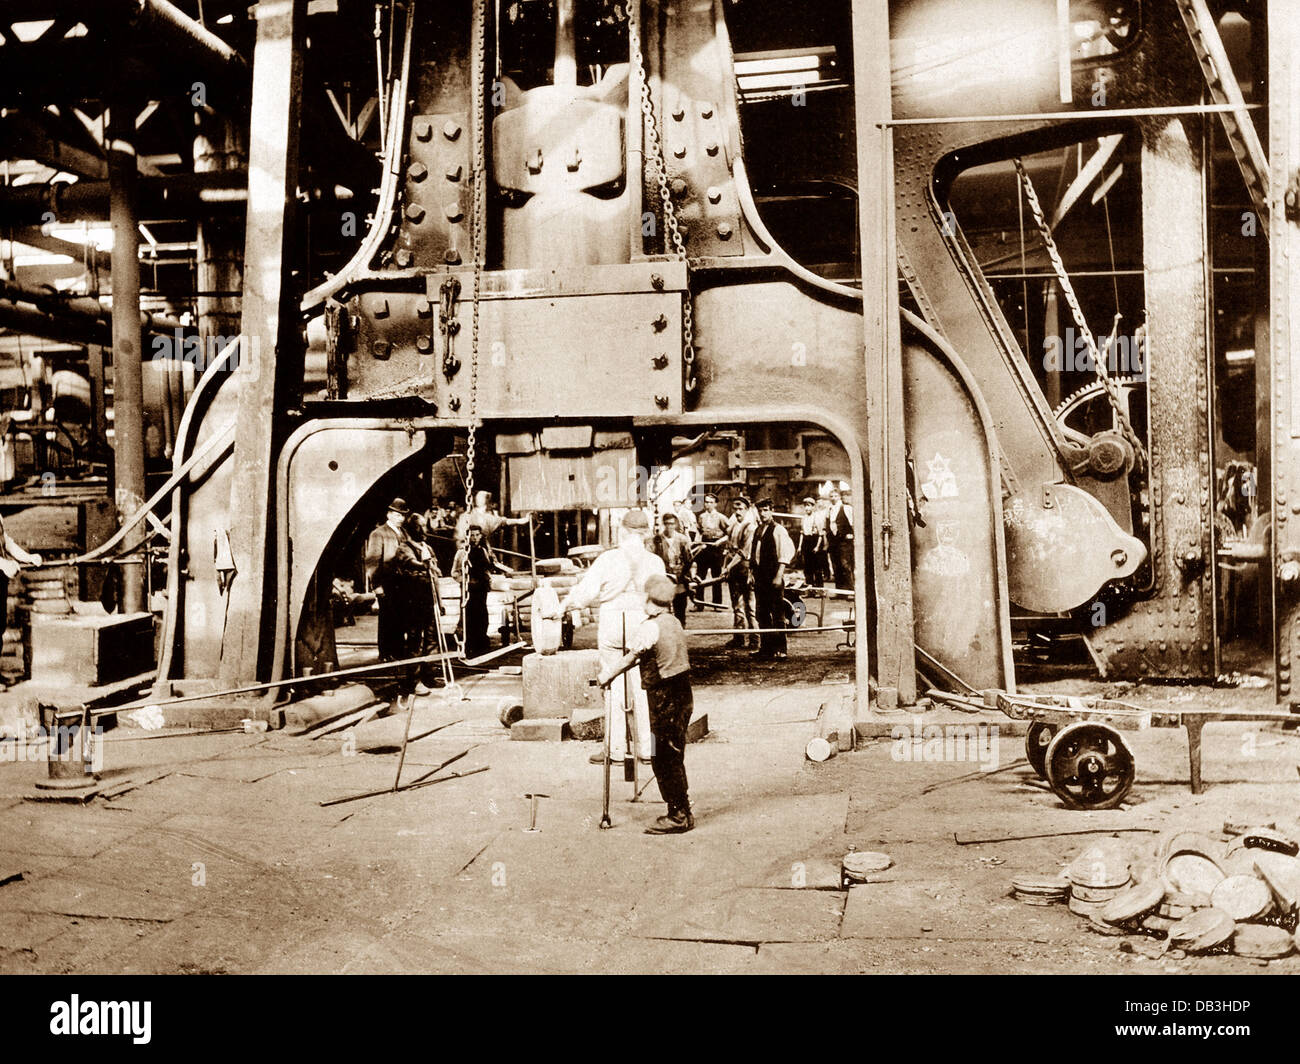 Penistone Steel Works 12 Ton Hammer early 1900s - Stock Image